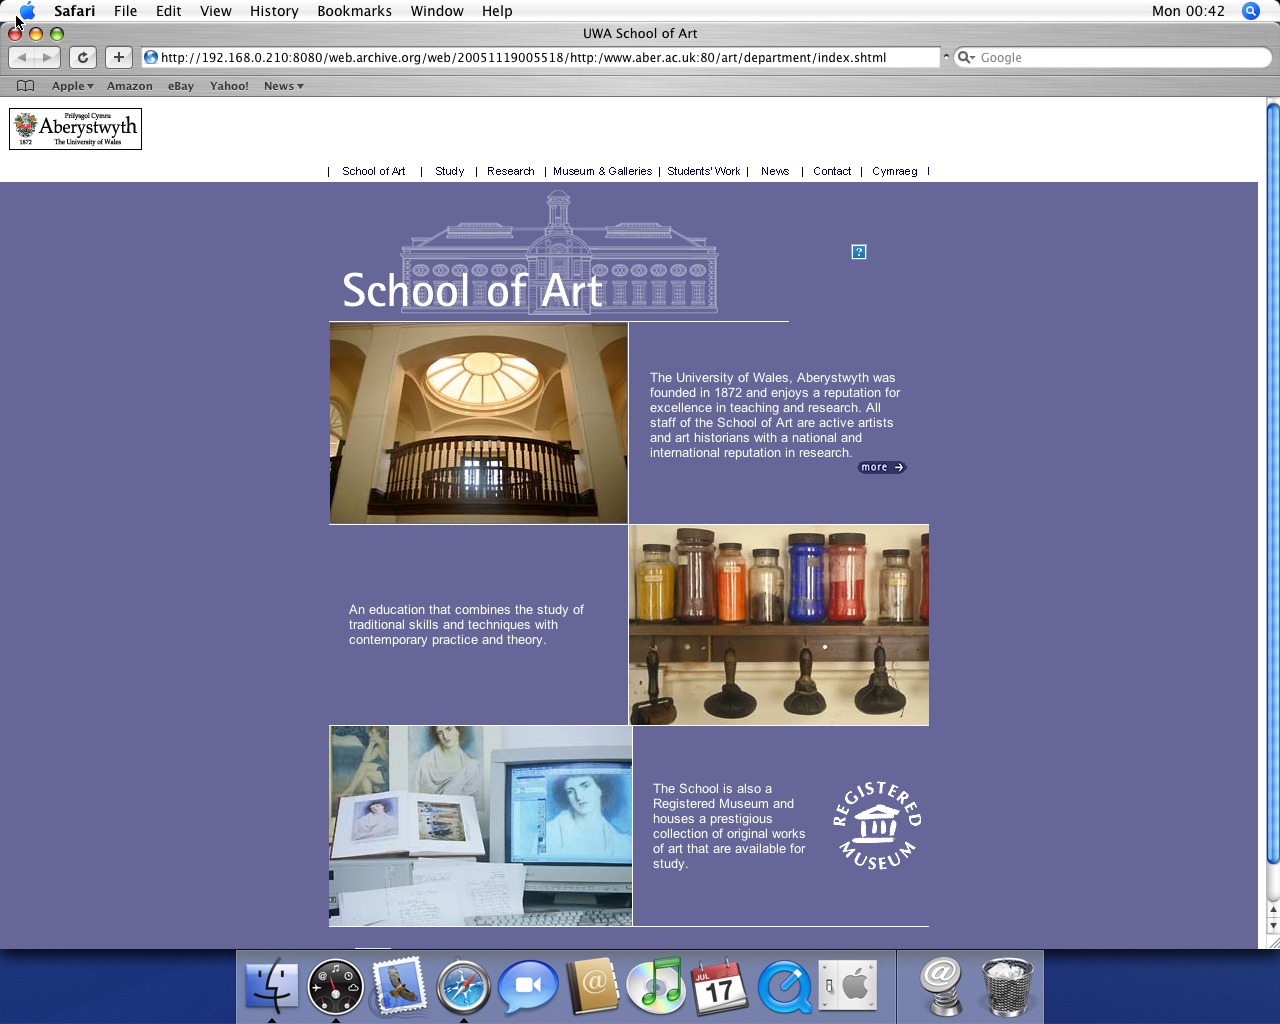 OS X 10.4 PPC with Safari 2.0 displaying a page from University of Aberystwyth archived at November 19, 2005 at 00:55:18